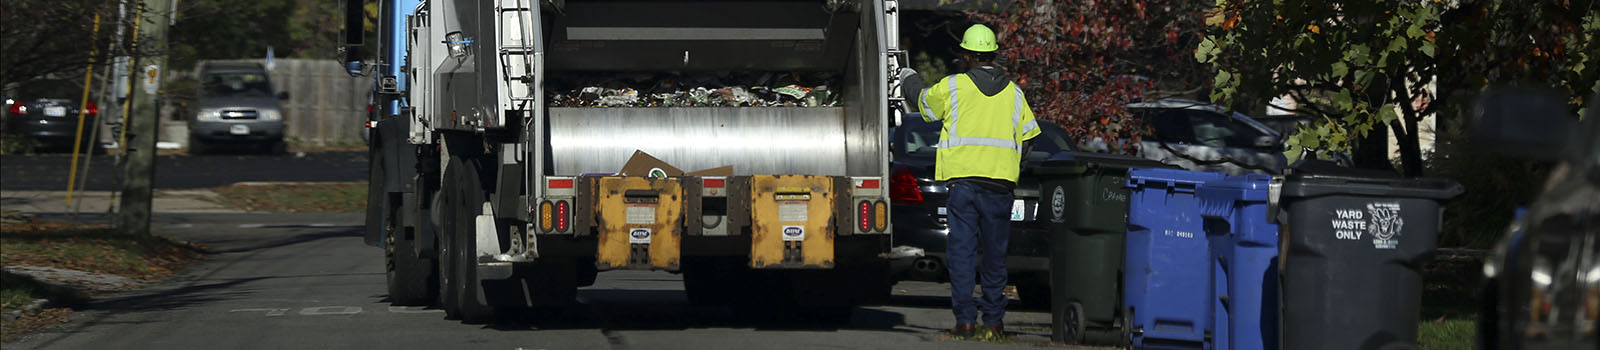 worker walking next to large truck collecting recyclables along a street